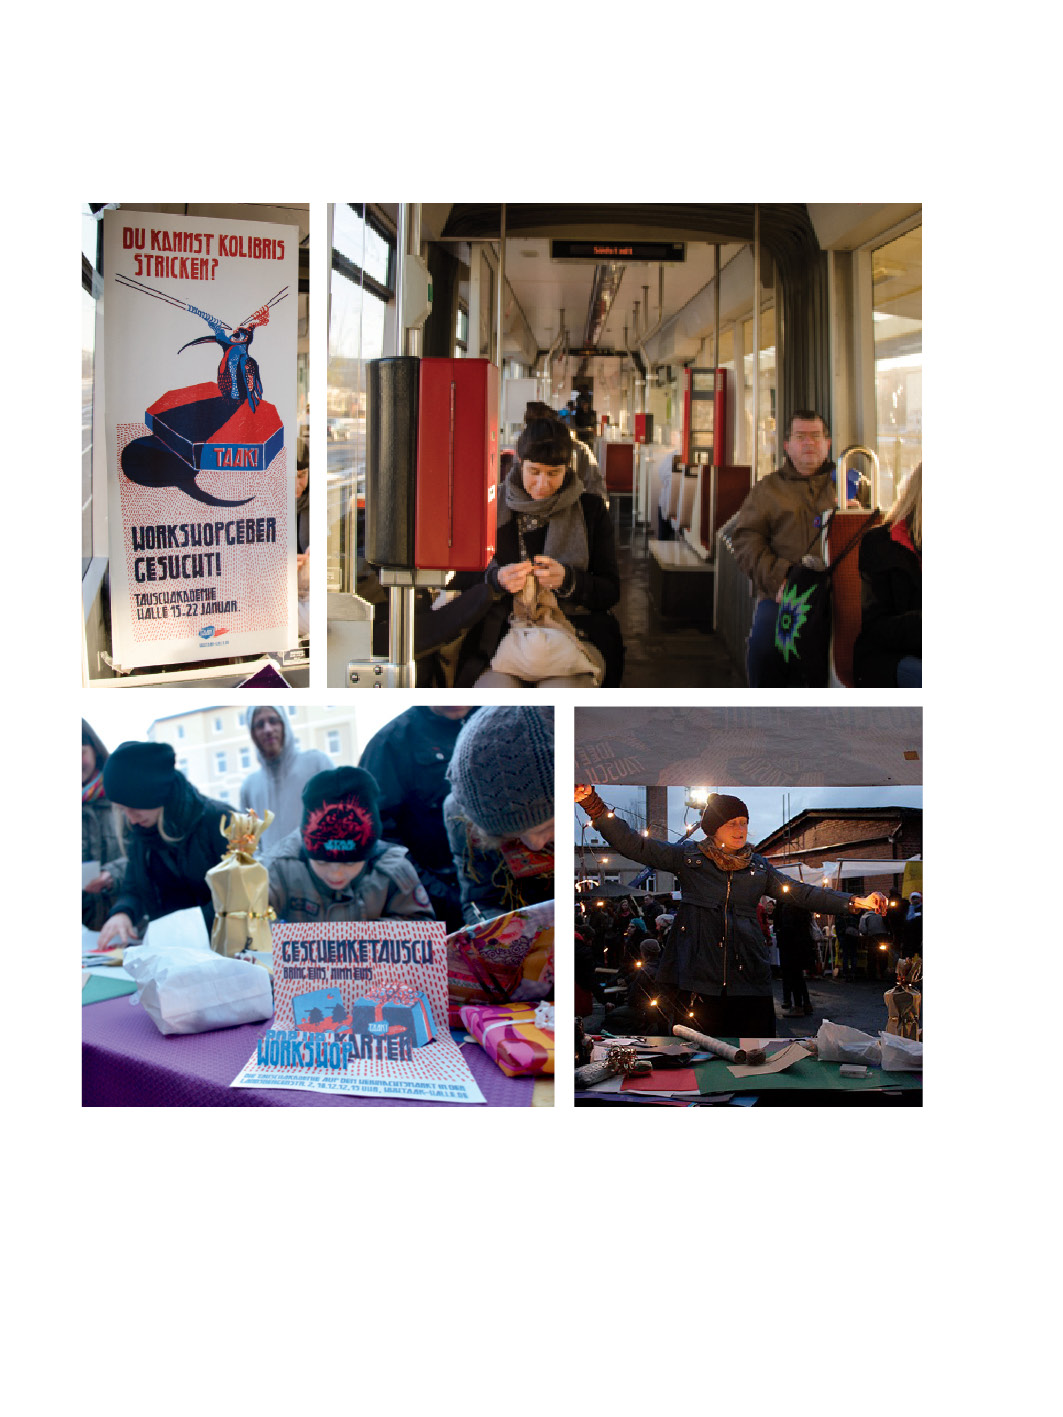 PROMOTING WORKSHOPS in a cable car and at The Christmas Market